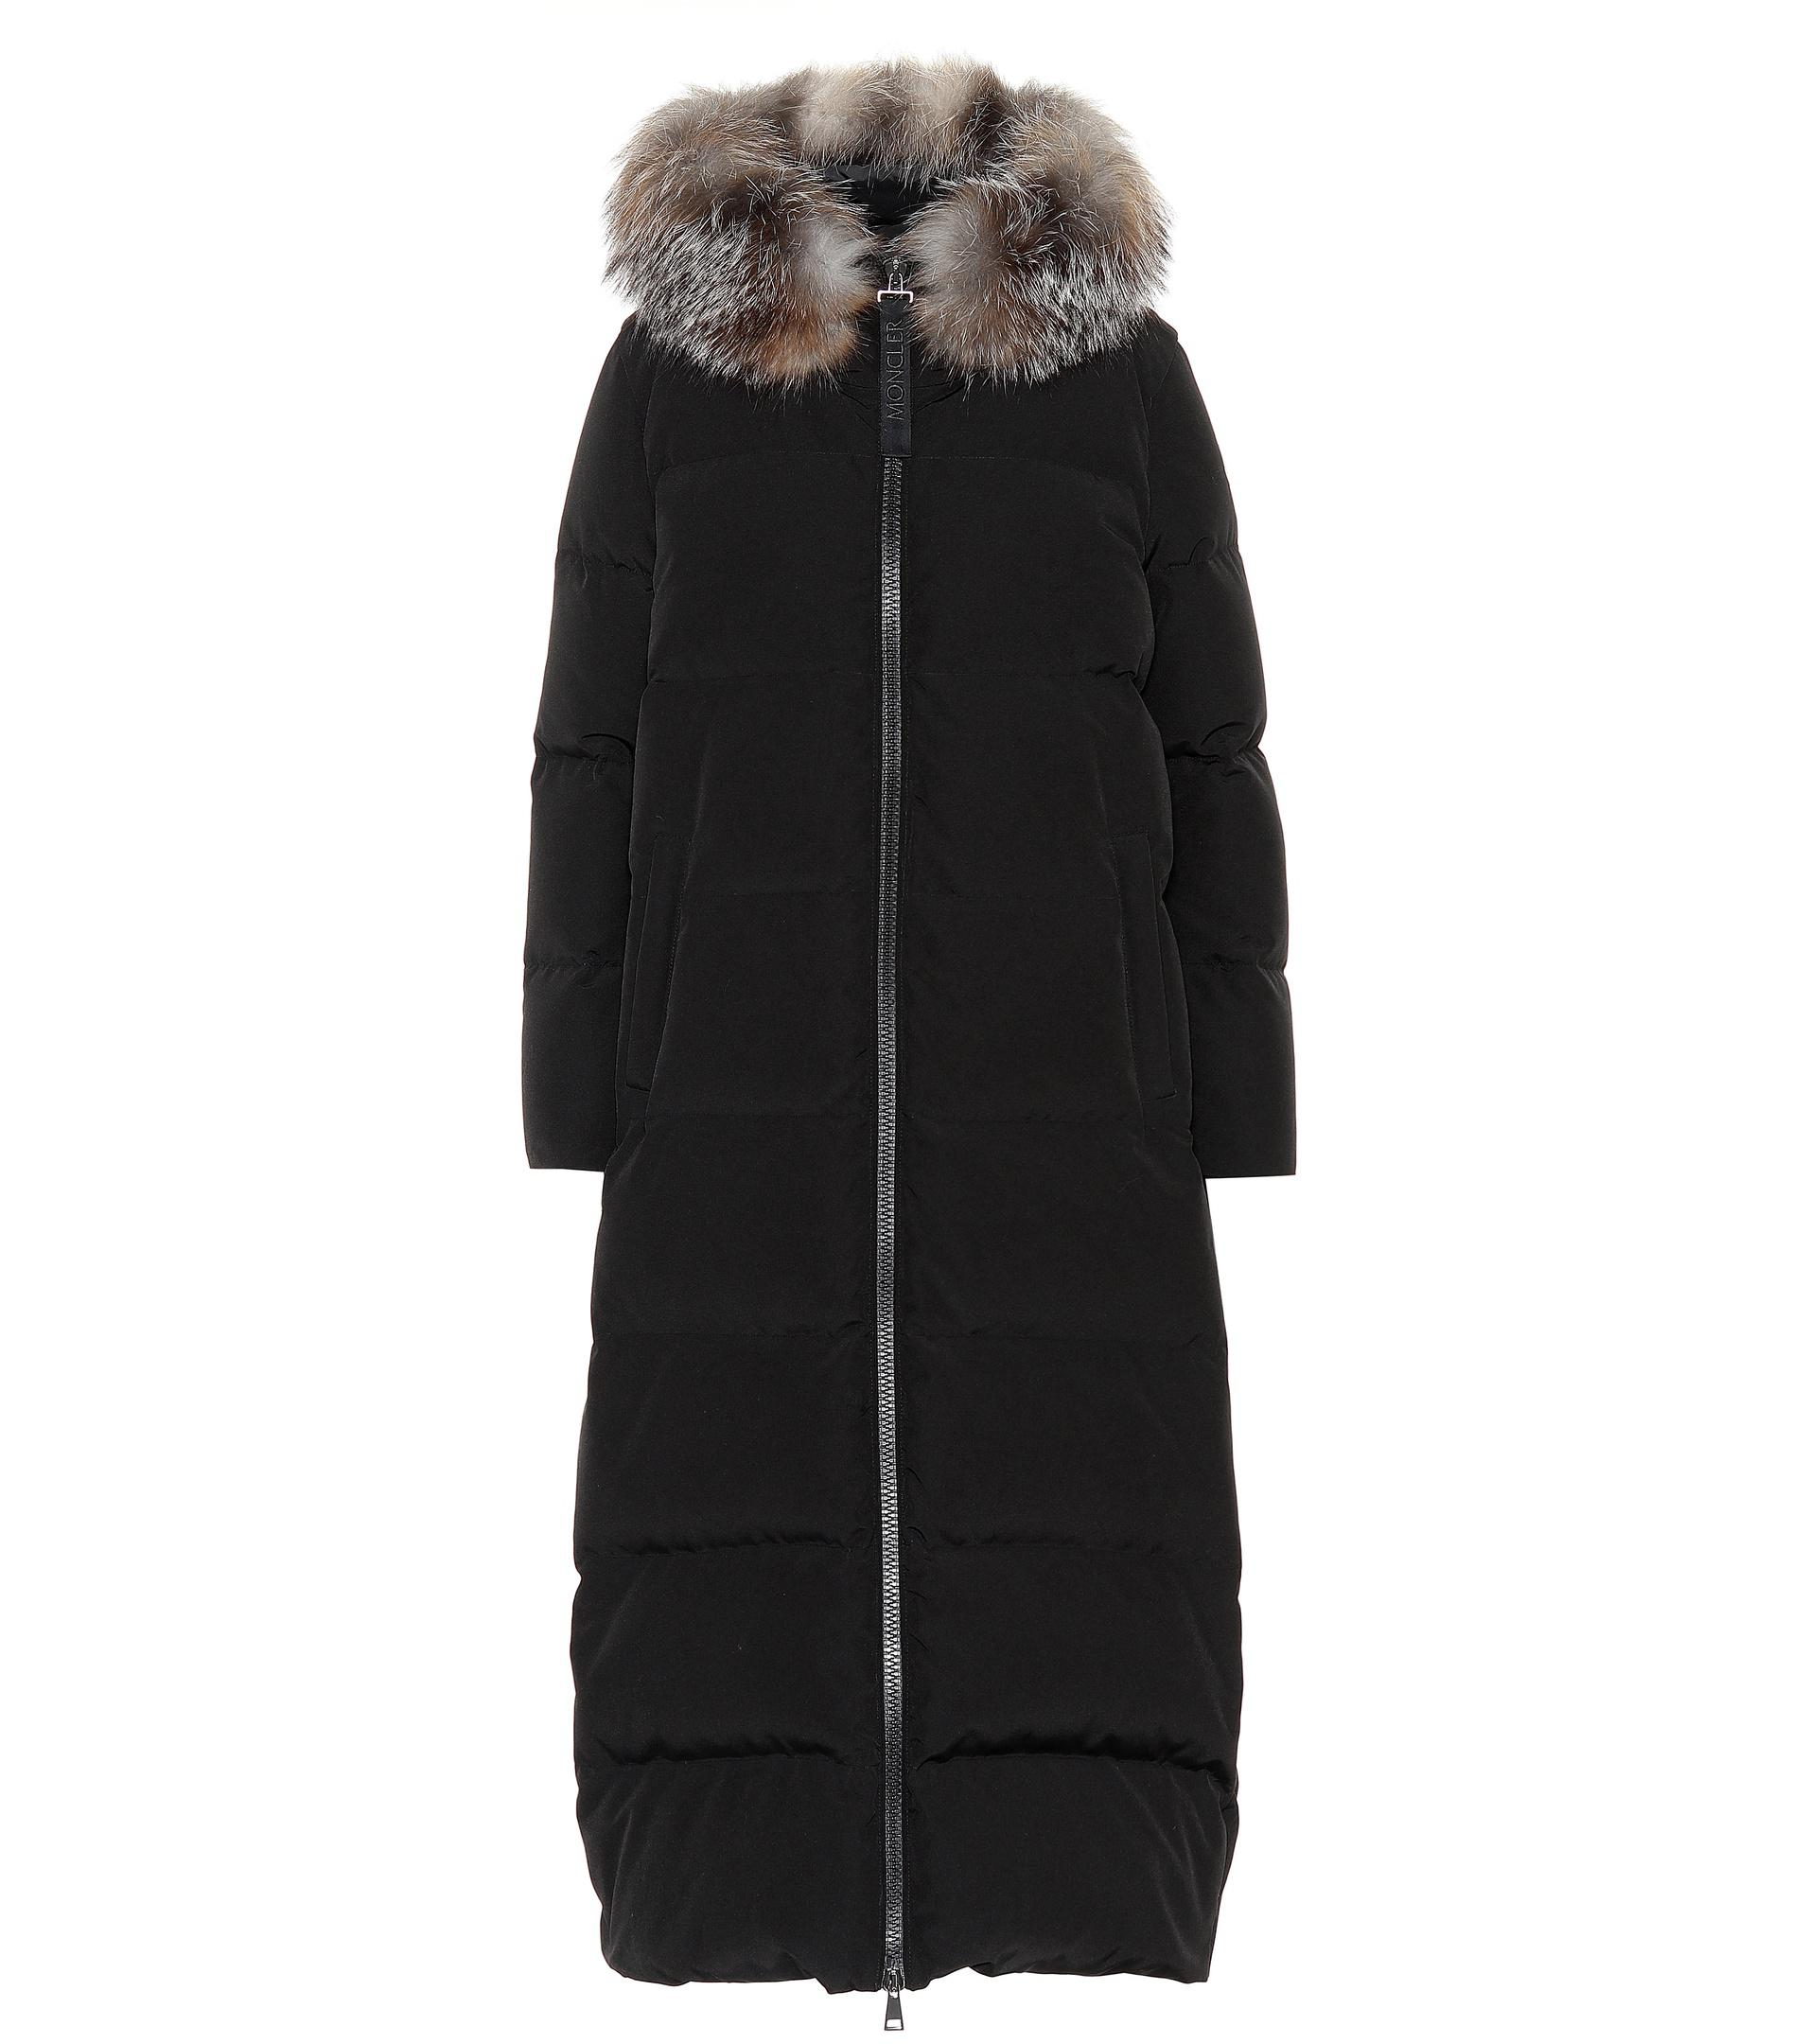 008bc60d1 low price moncler fur trimmed puffer coat racks a15f4 73a59